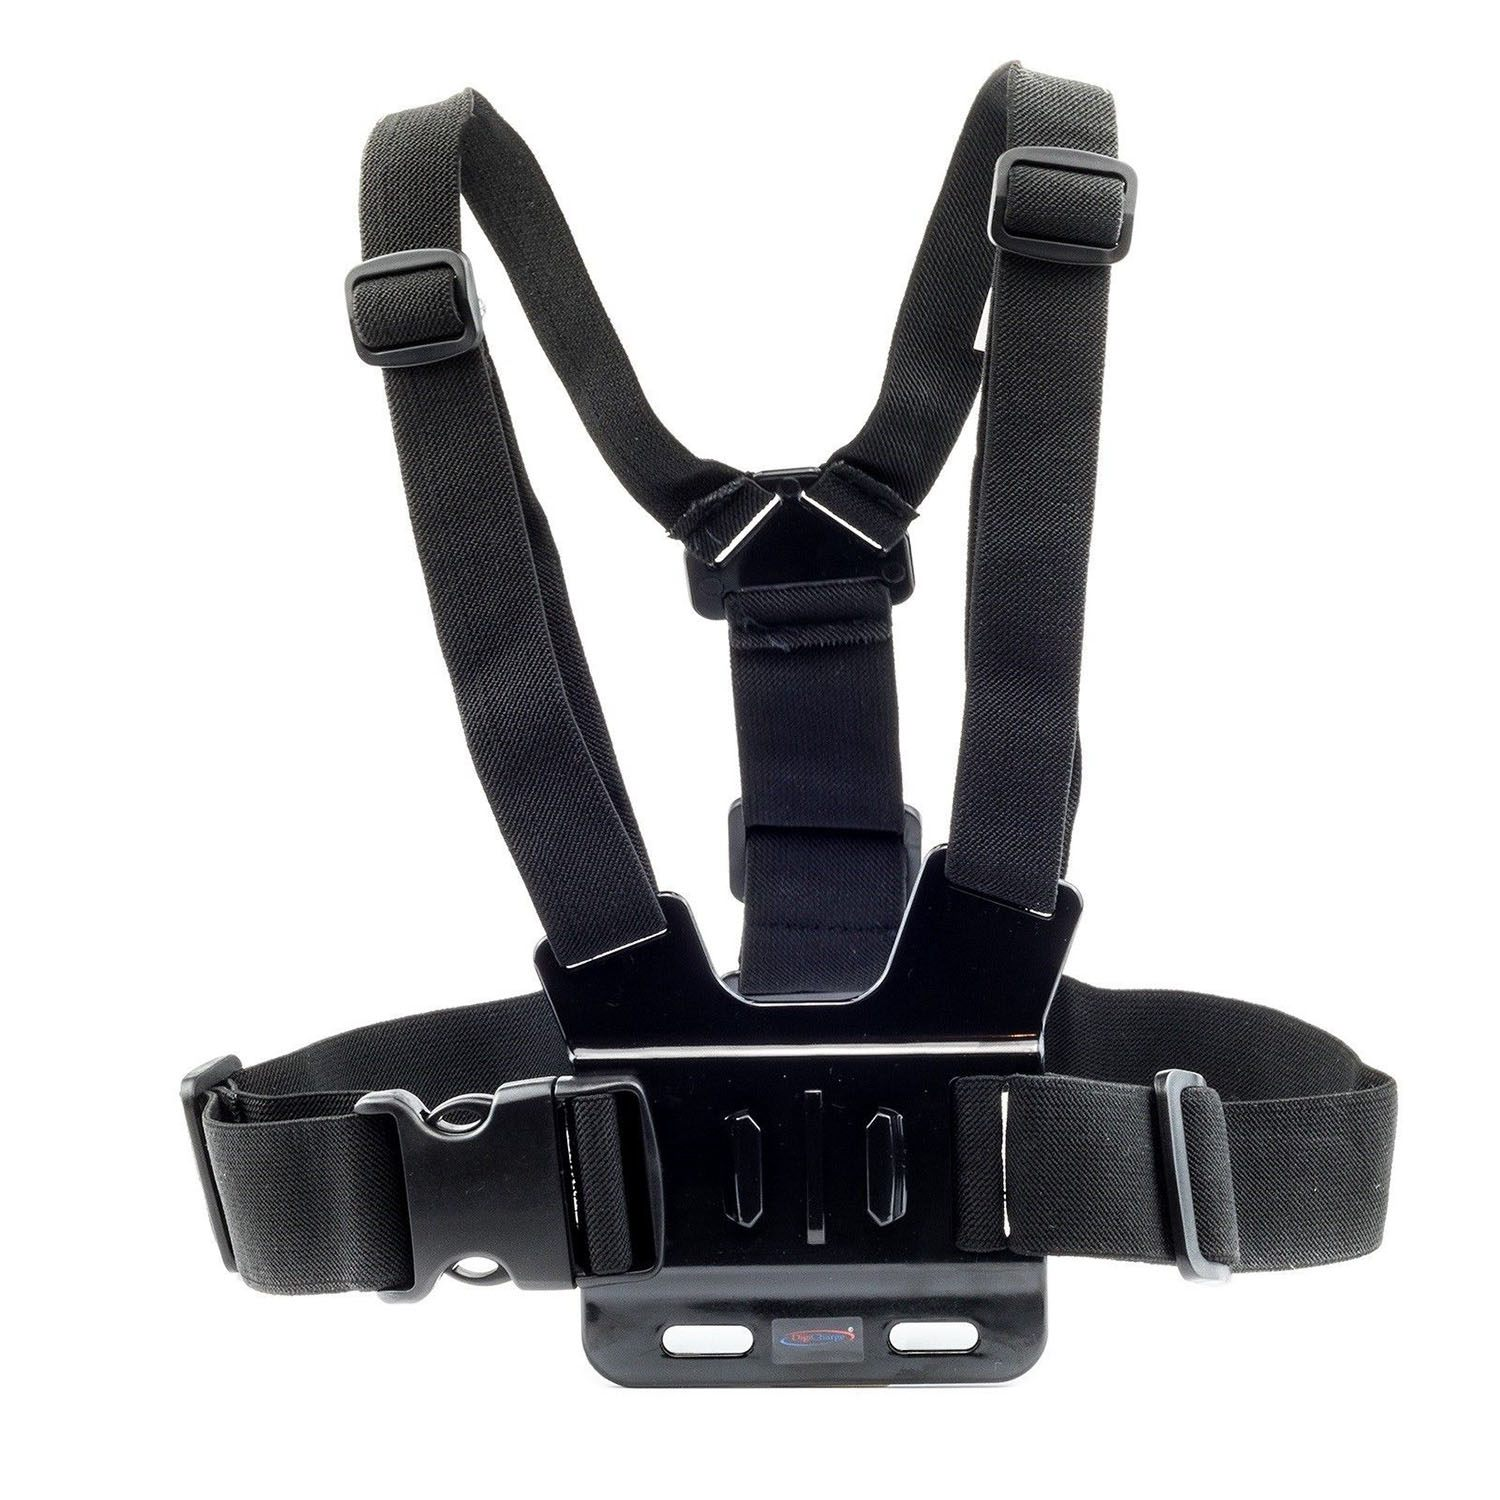 Adjustable Chest Body Harness Accessories Belt Strap Mount For Gopro Hero 5 Support All Action Sports Camera VeFly sport